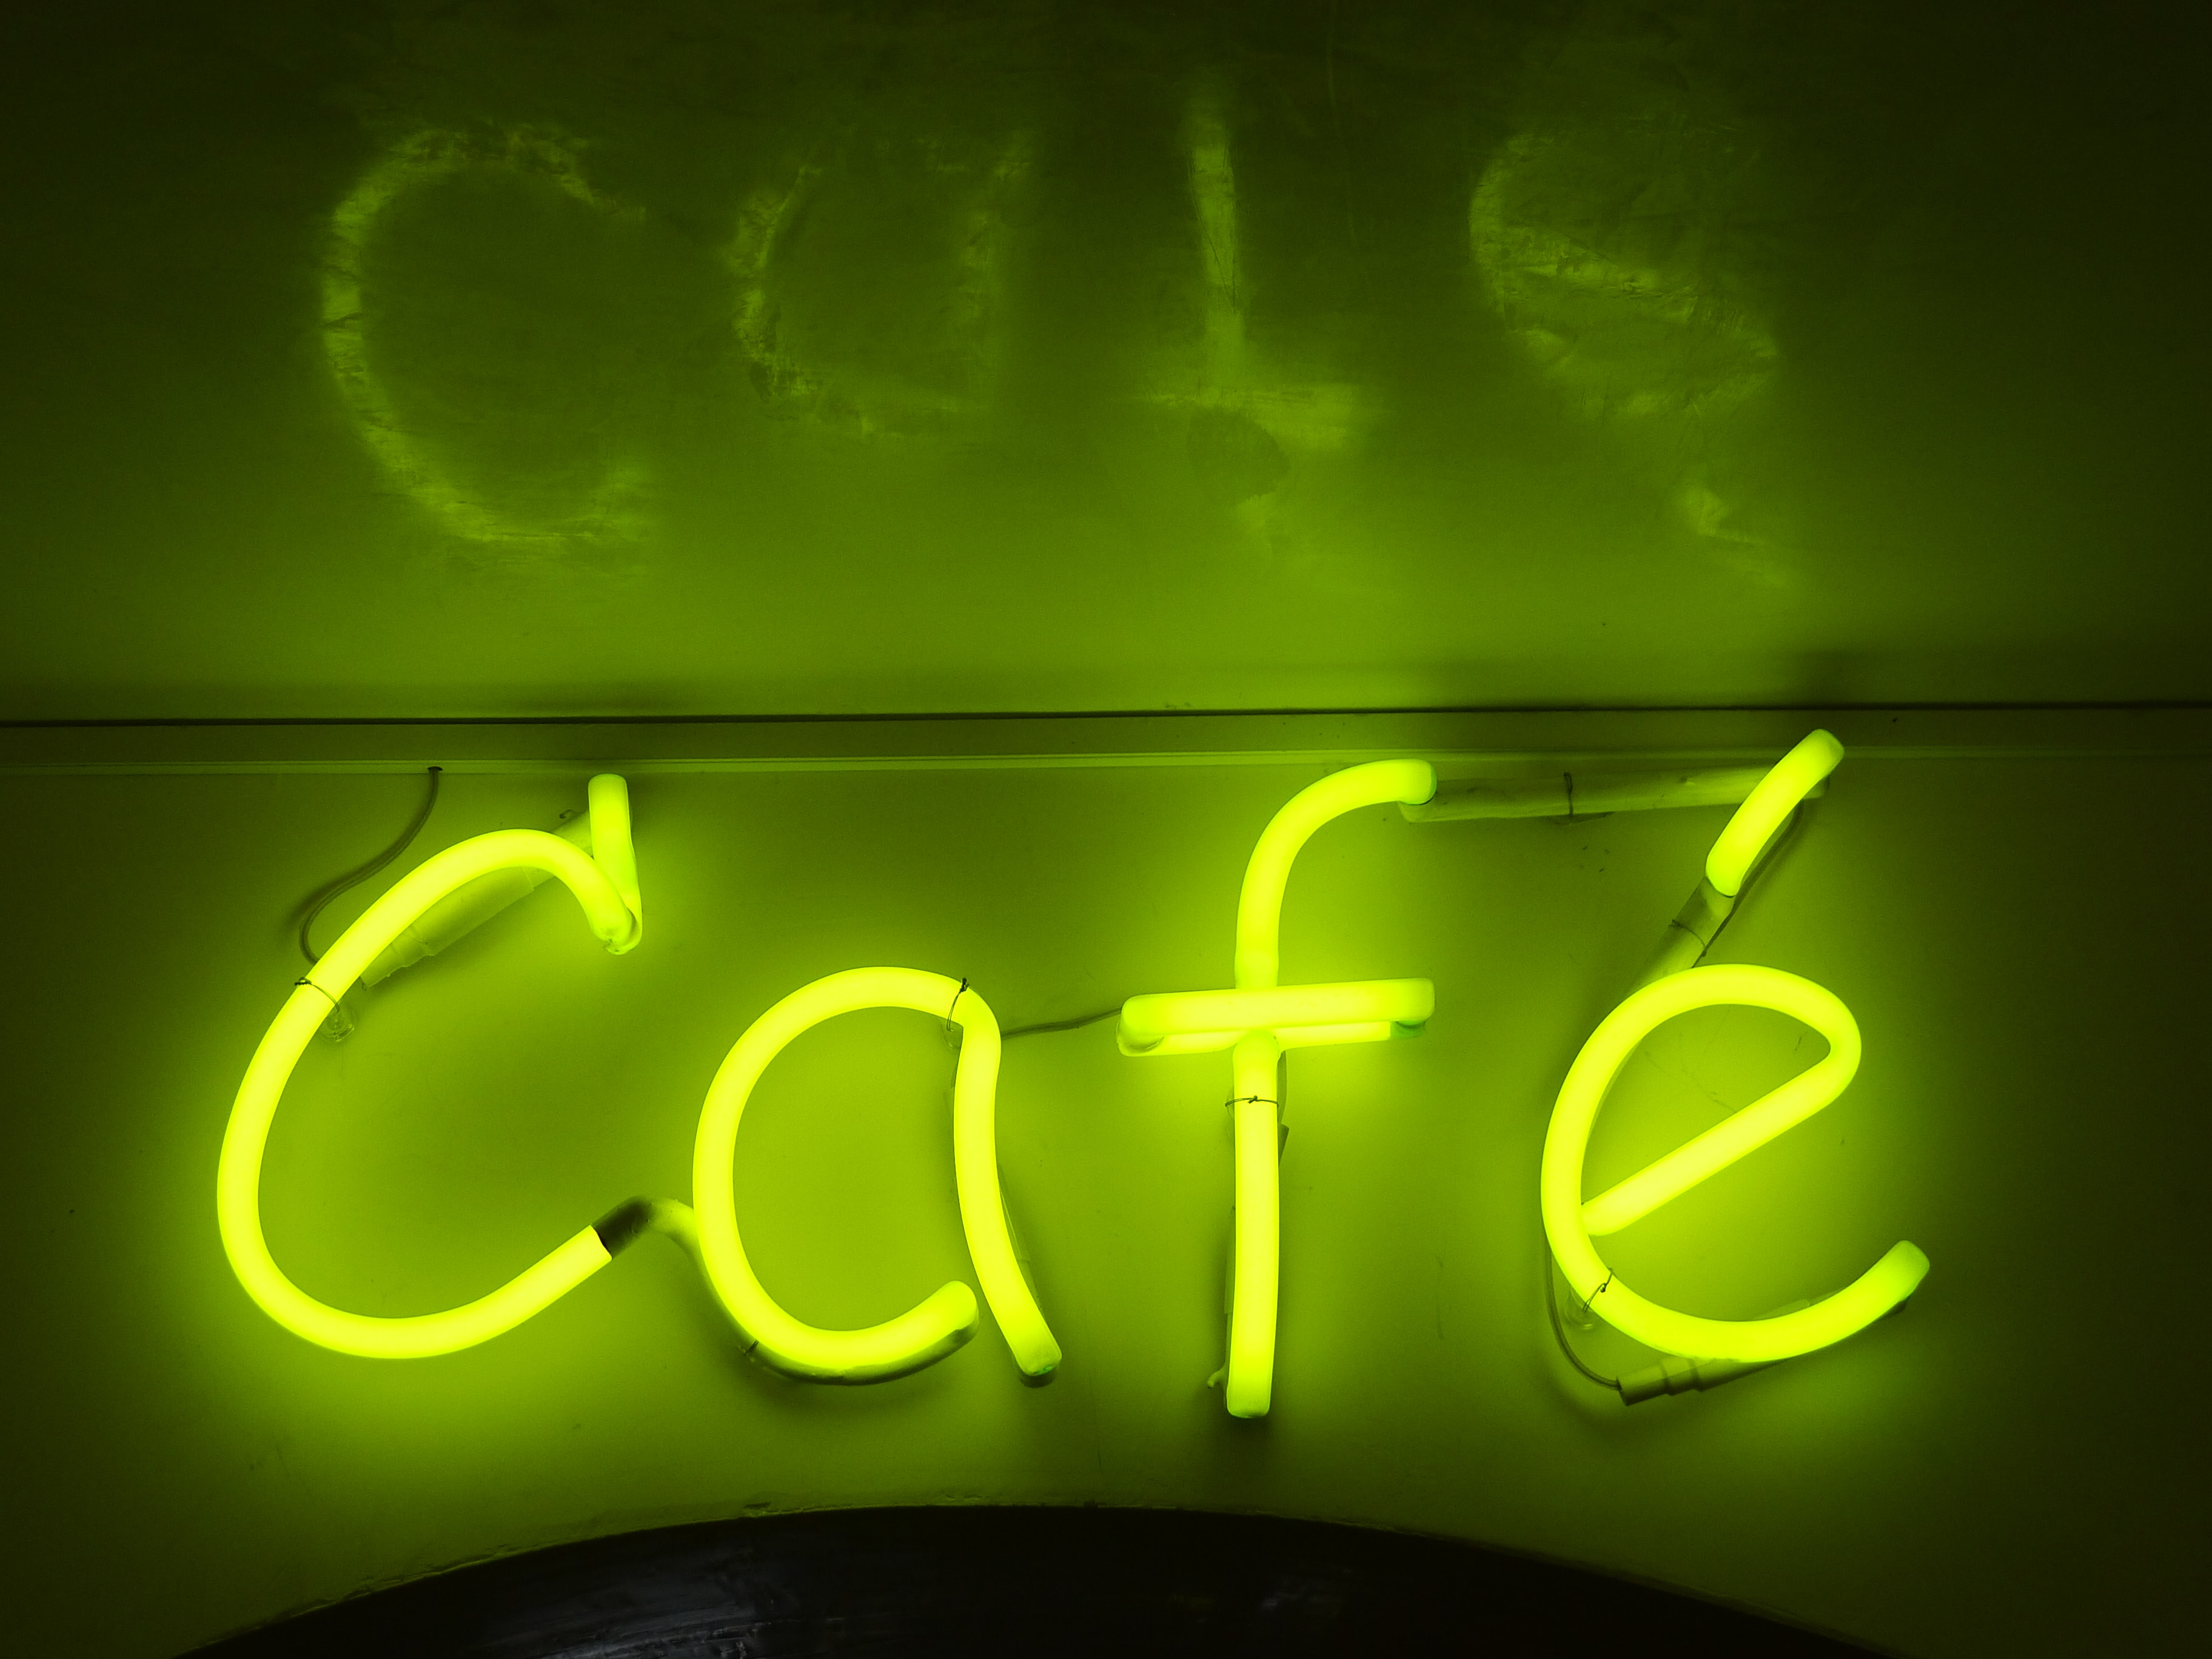 green Cafe neon signage